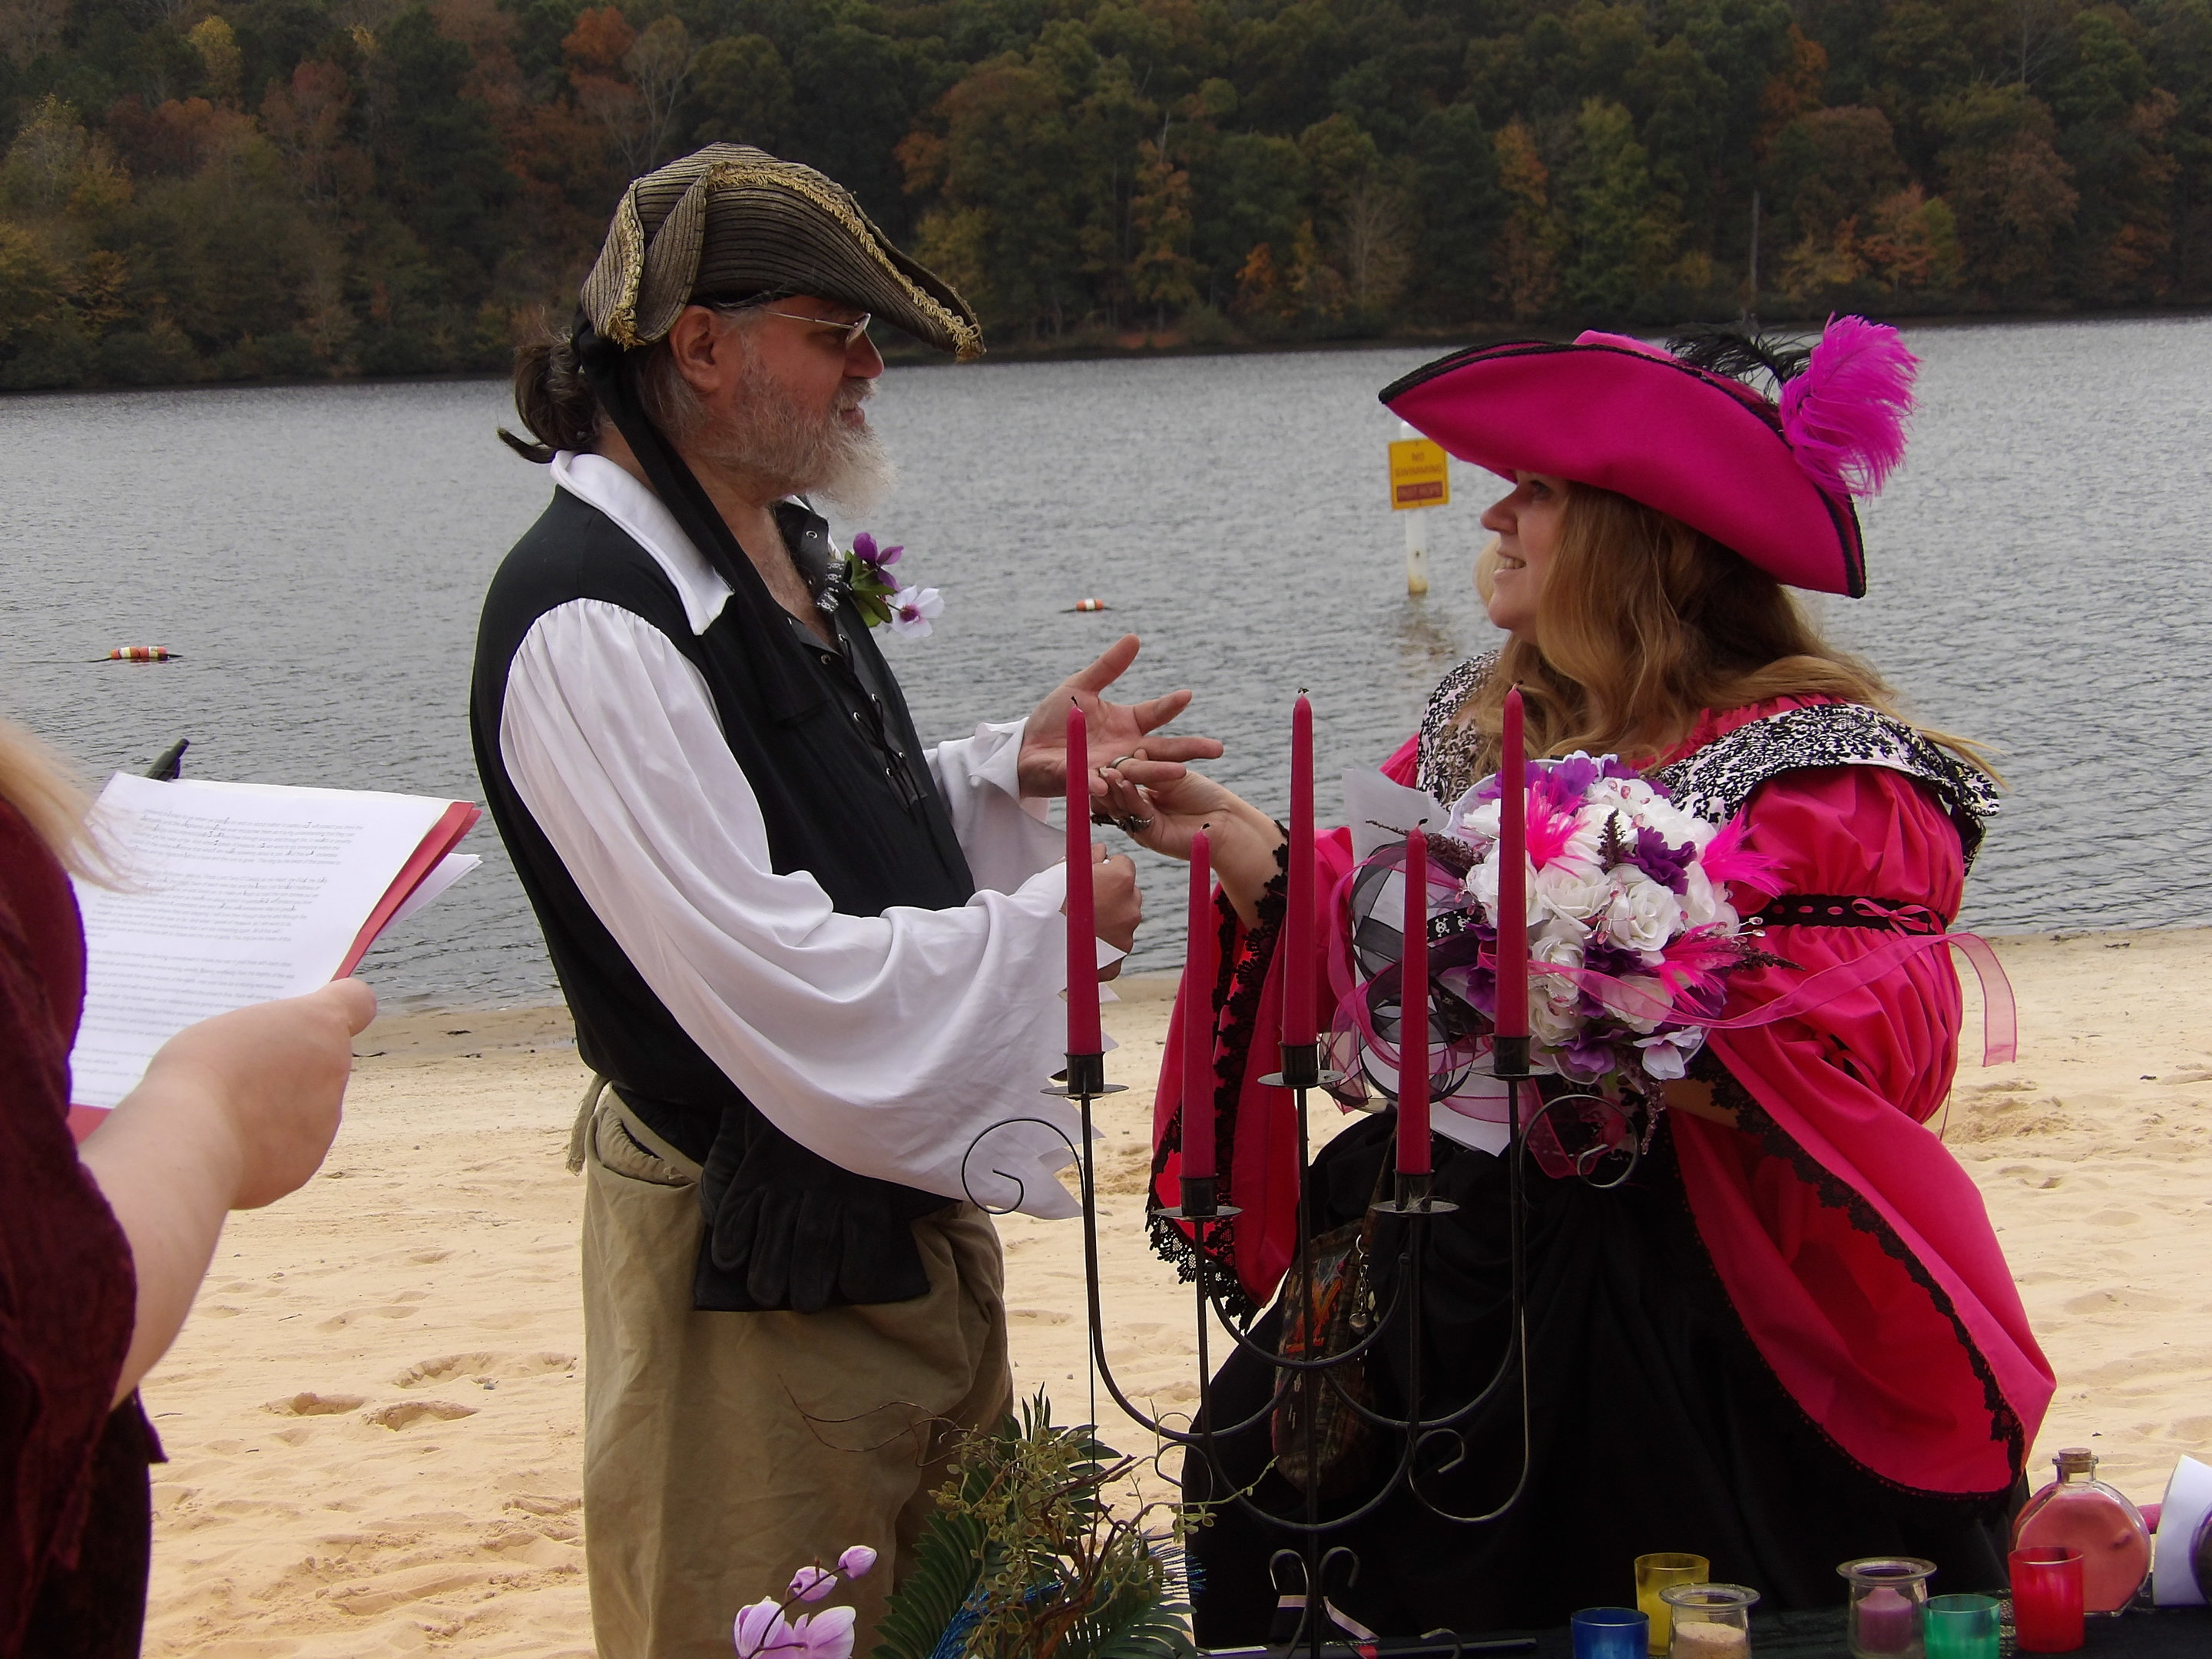 Erin McRaven & Terry Cass Pirate Wedding on Halloween!